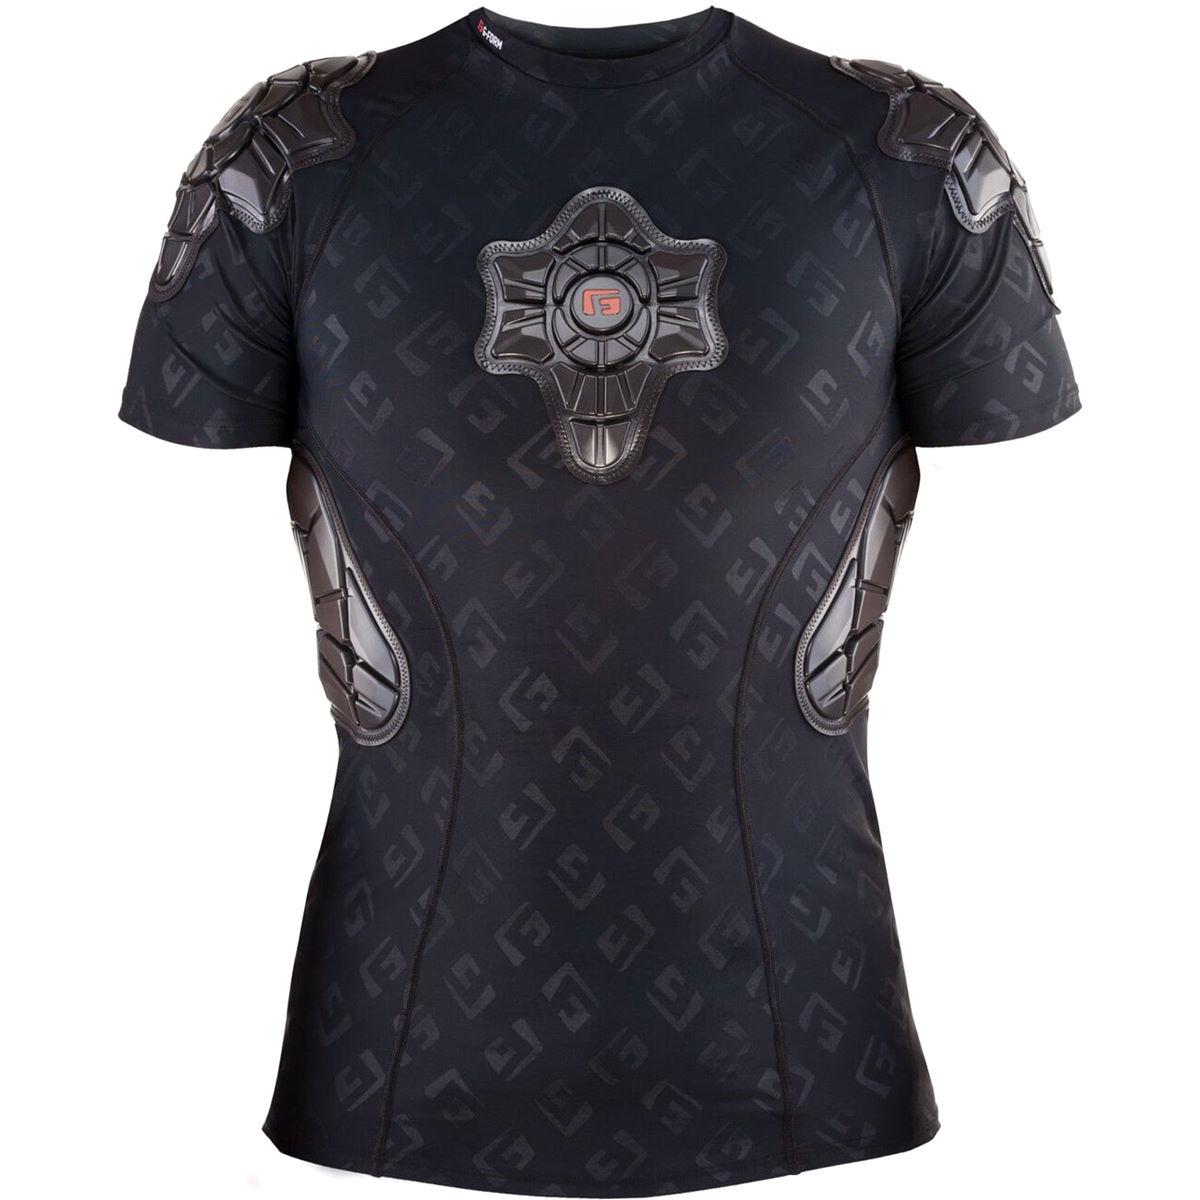 G-Form Youth Pro-X SS Shirt - Petos y protectores corporales